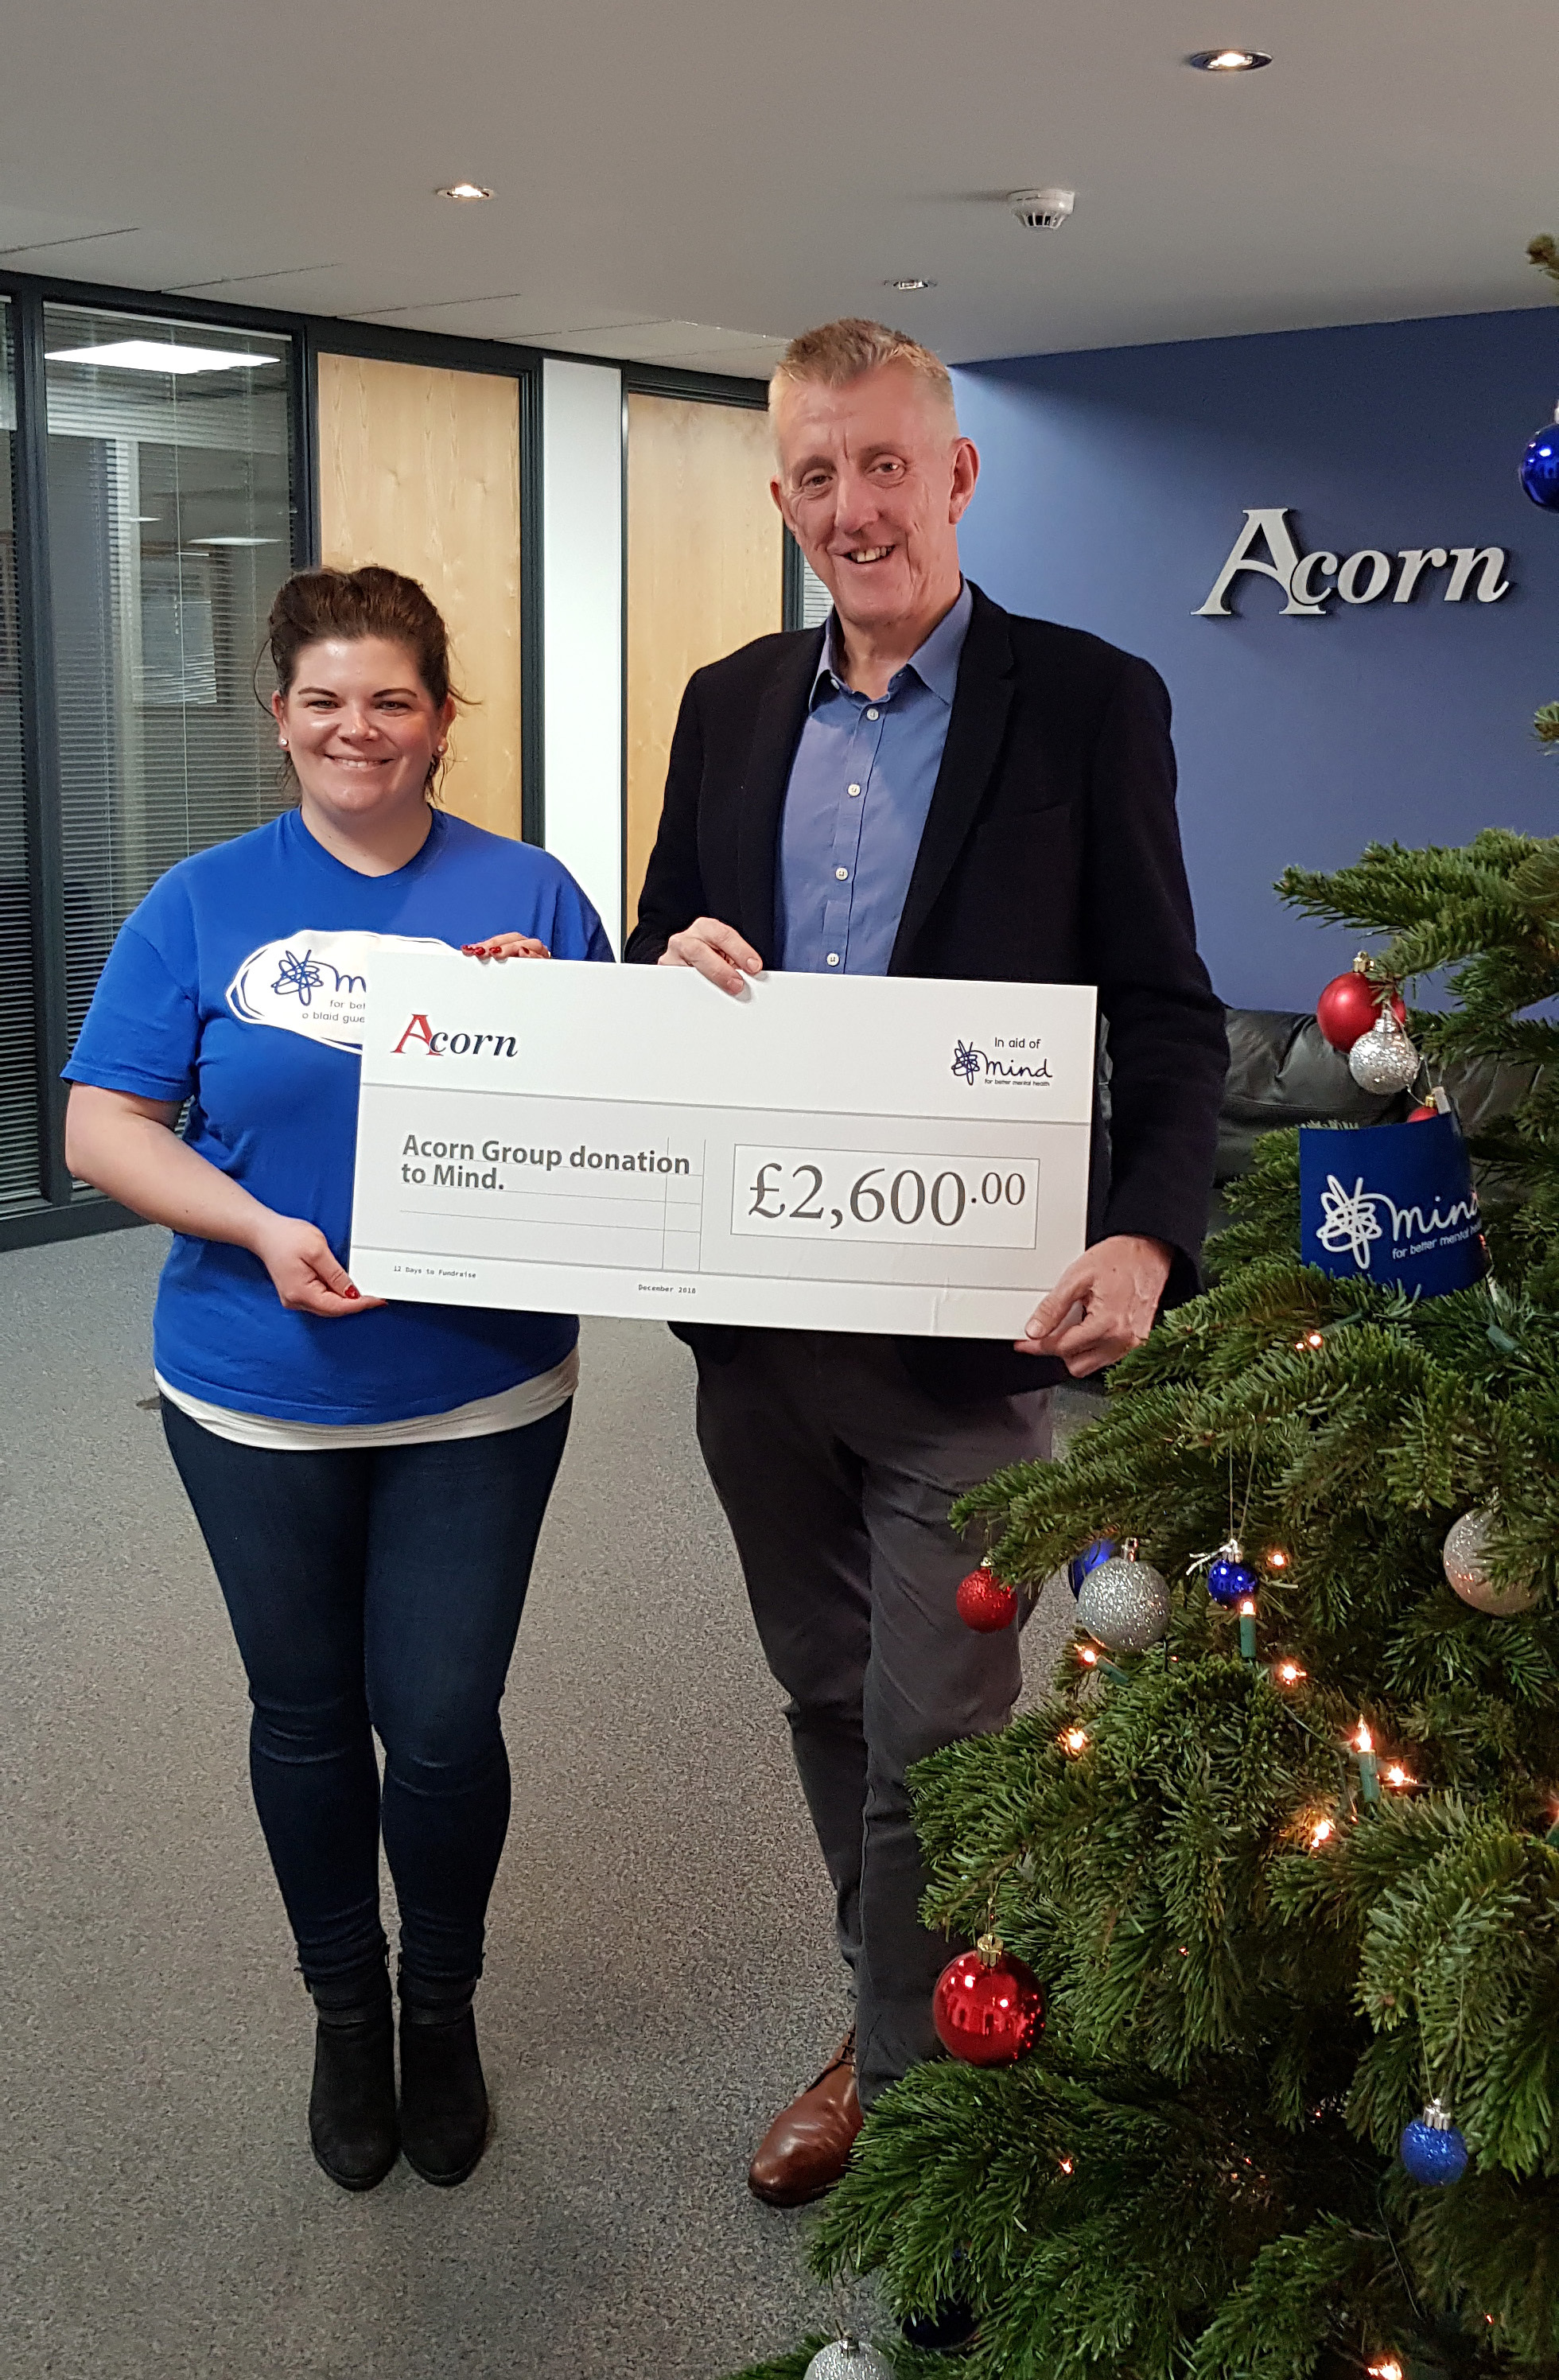 Andrew Tugwell presents Acorn's cheque to Mind